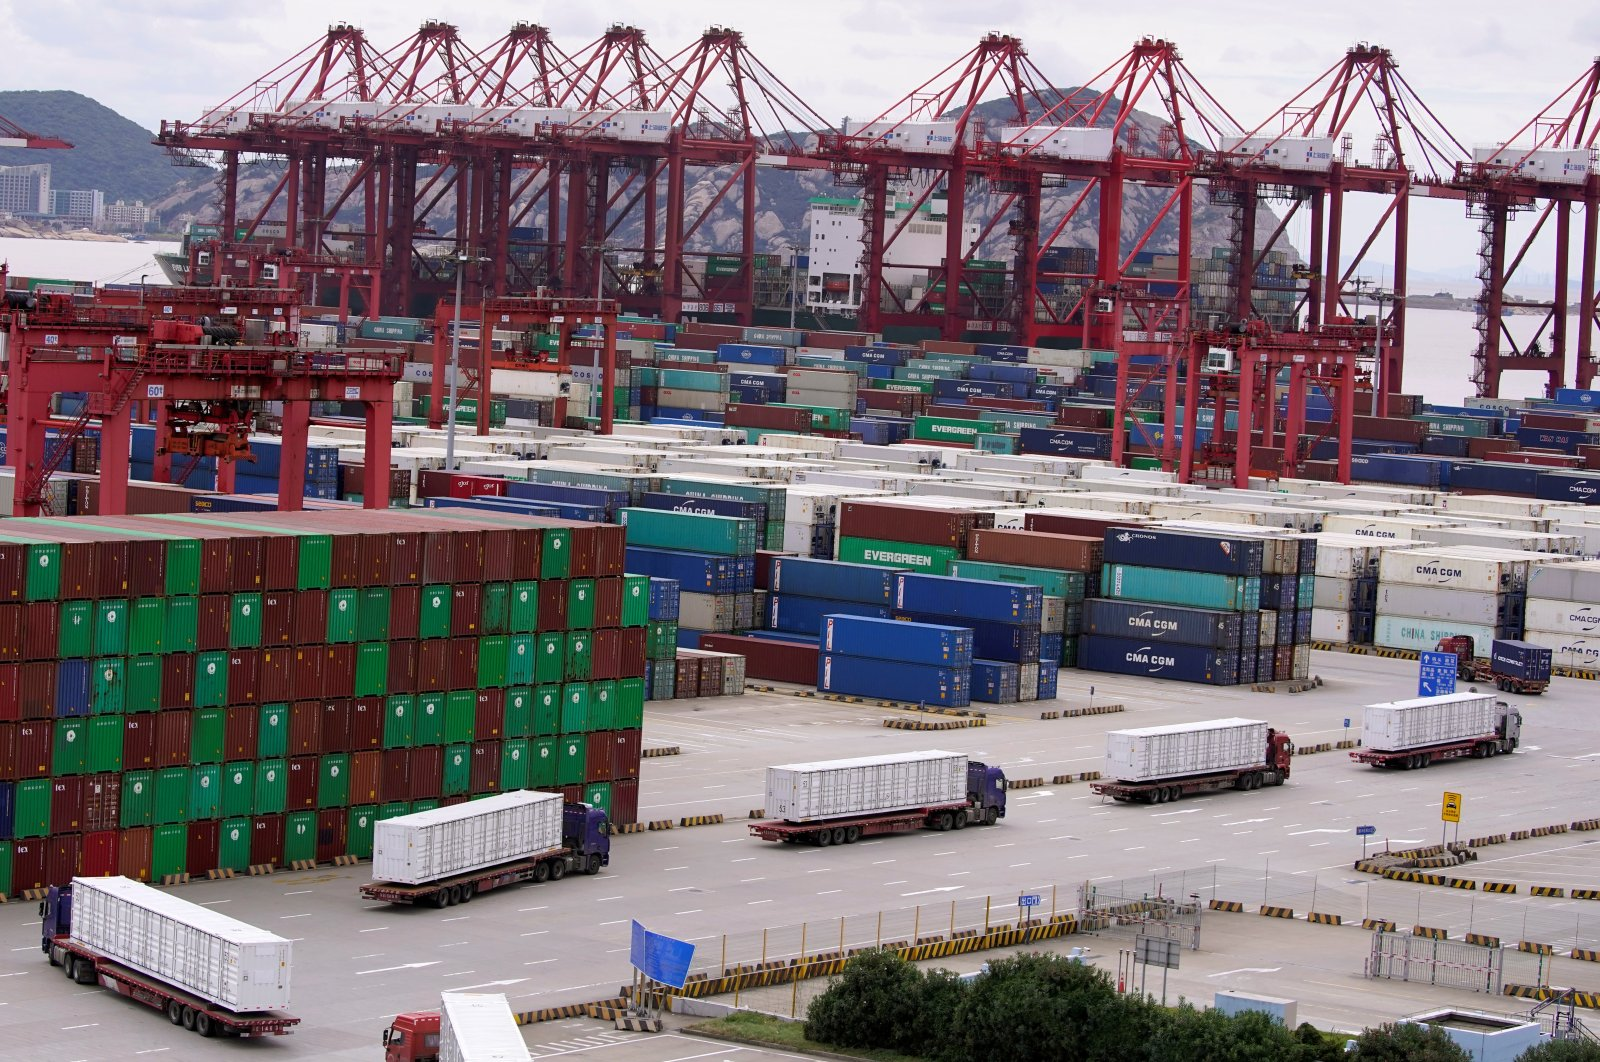 Containers and lorries are seen at the Yangshan Deep Water Port in Shanghai, China, as the coronavirus outbreak continues, Oct. 19, 2020. (Reuters Photo)